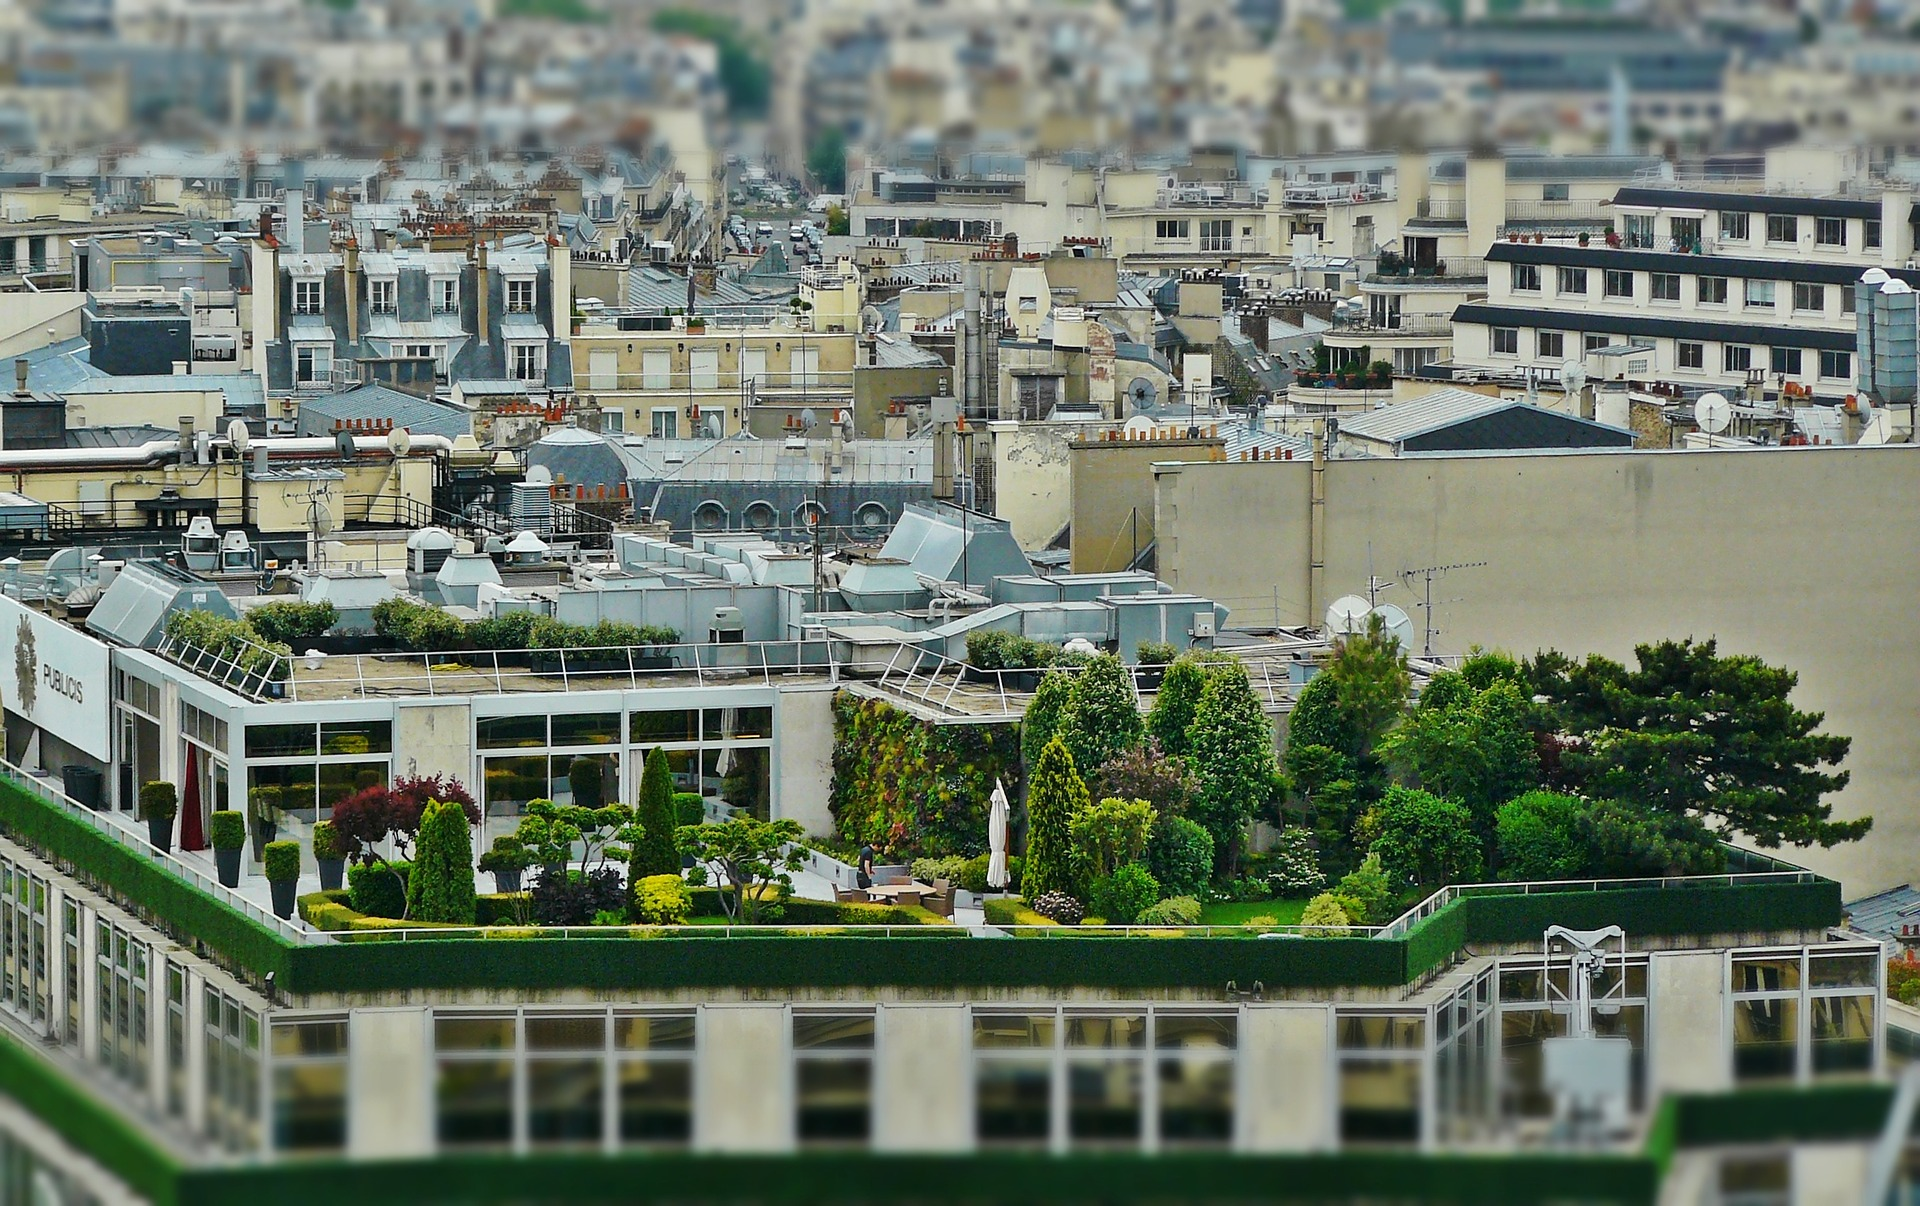 garden on the roof